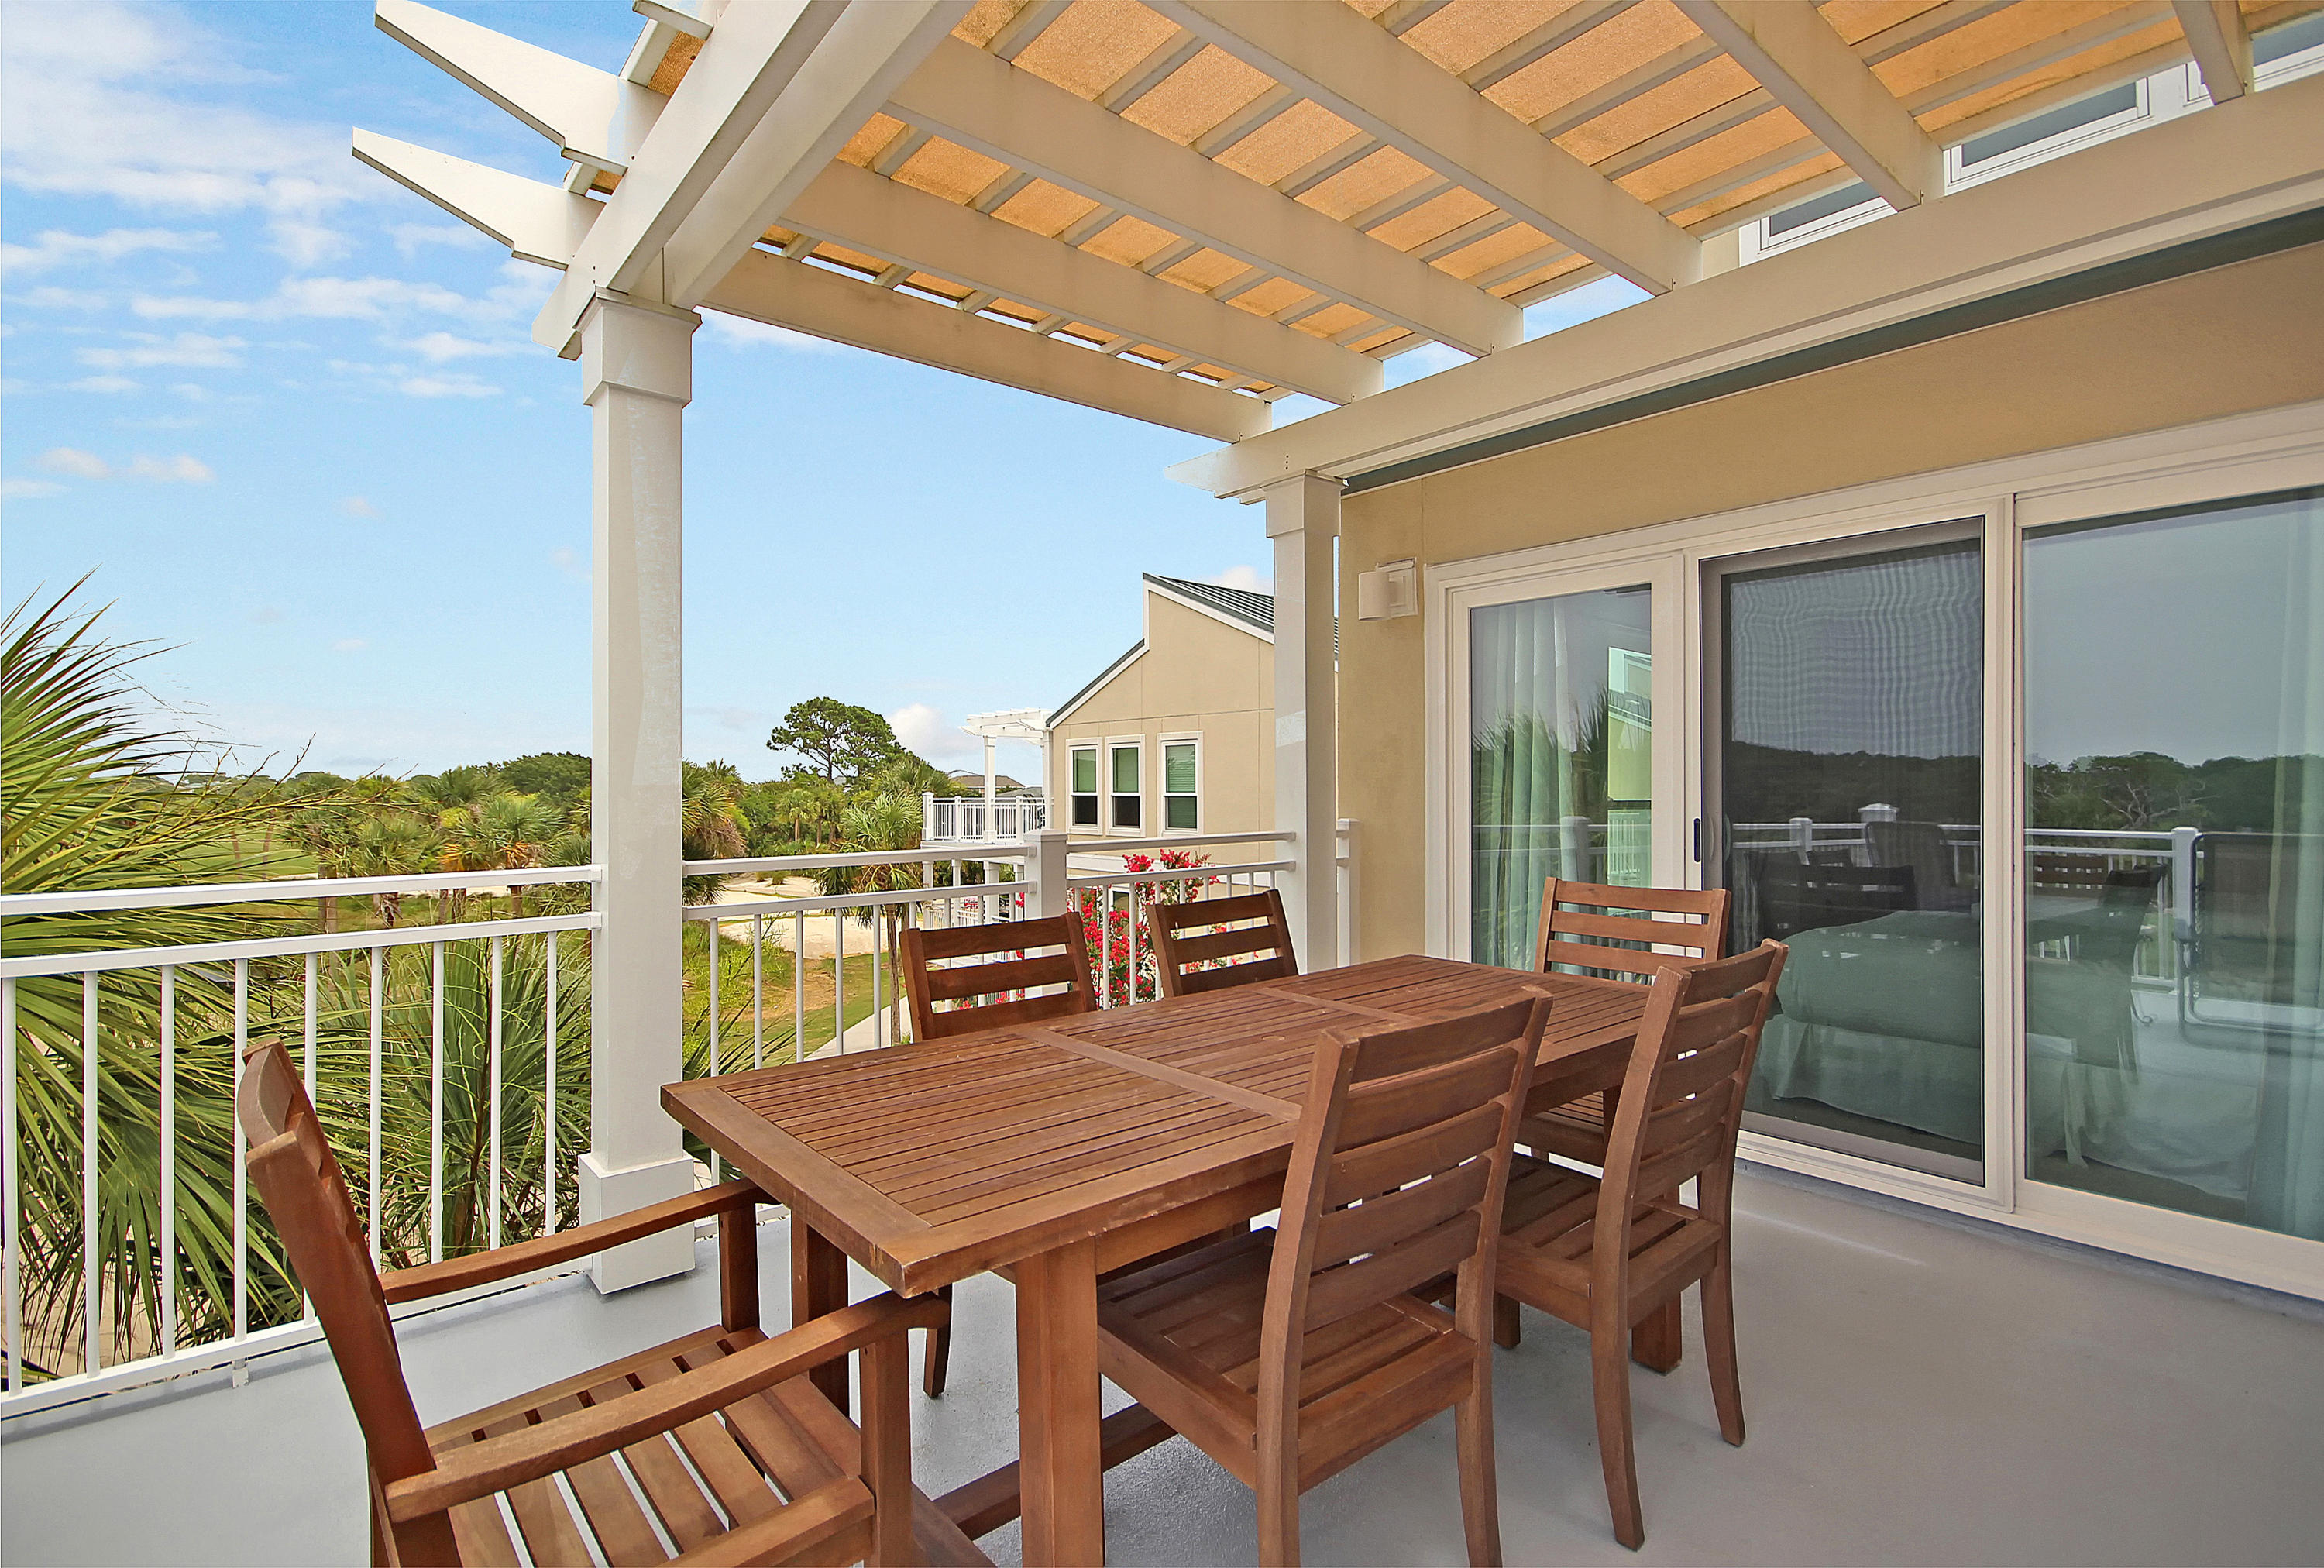 Atrium Villas Homes For Sale - 2912 Atrium Villa, Seabrook Island, SC - 16